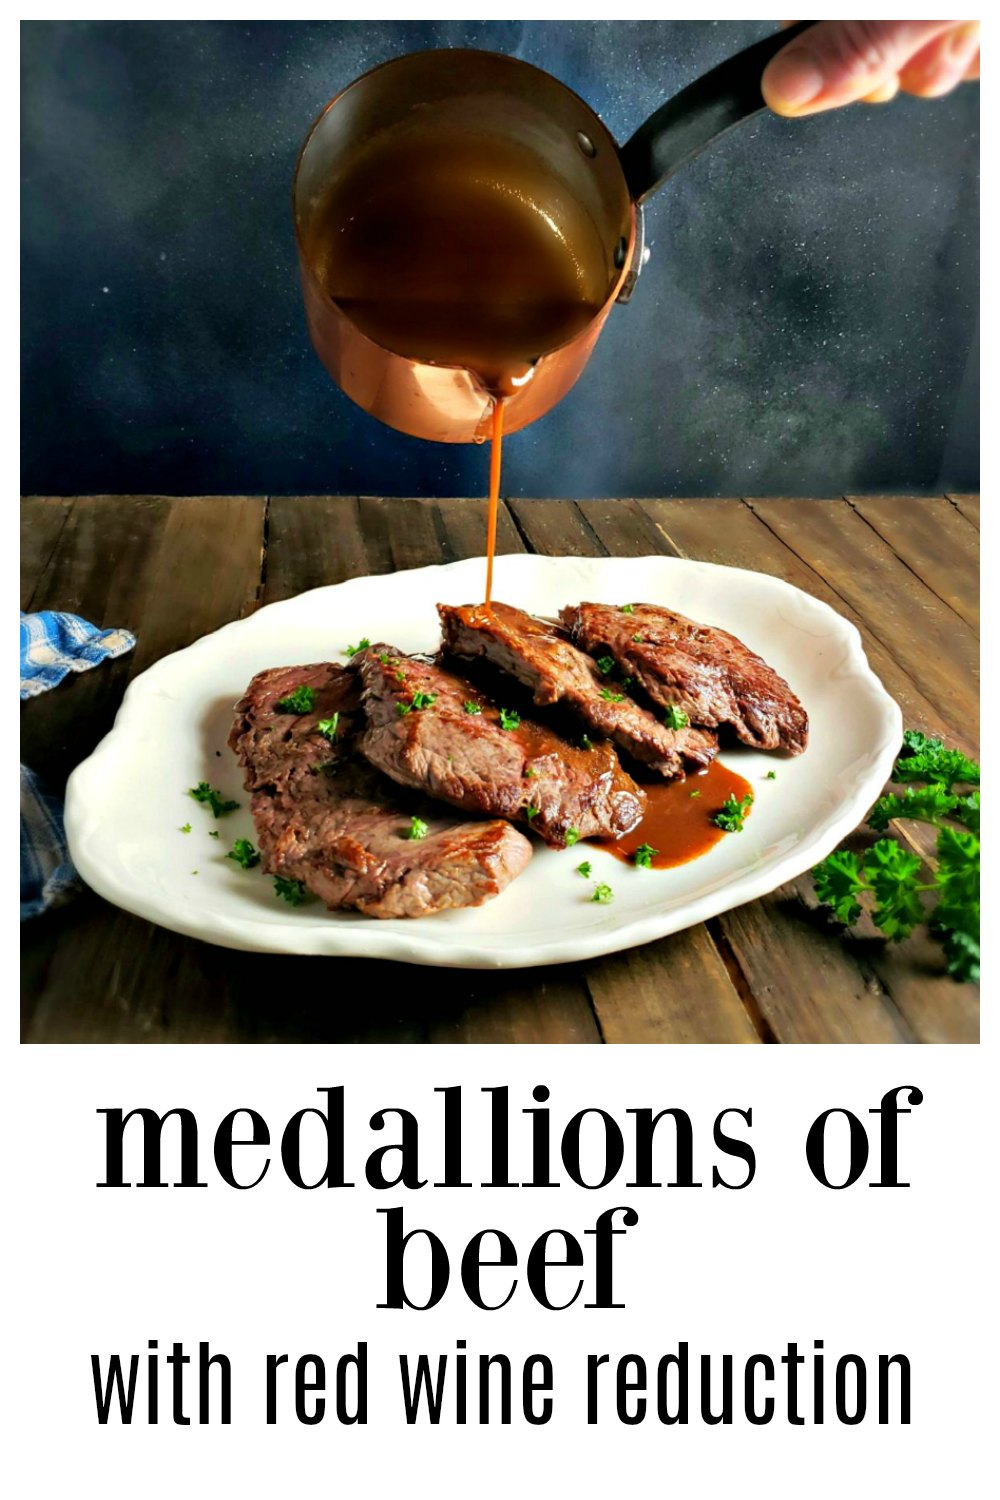 Medallions of Beef with Red Wine Reduction is easy and fast and a beautiful cut for a romantic dinner - and the wine reduction is silky, smooth and glossy. It steals the show! These are a great way to use scrappier parts of Beef Tenderloin or small filets, but this method might save a cheap steak, too. #FiletMignon #FiletMignonRedWineSauce #MedallionsBeefRedWineReduction #SteakWineSauce